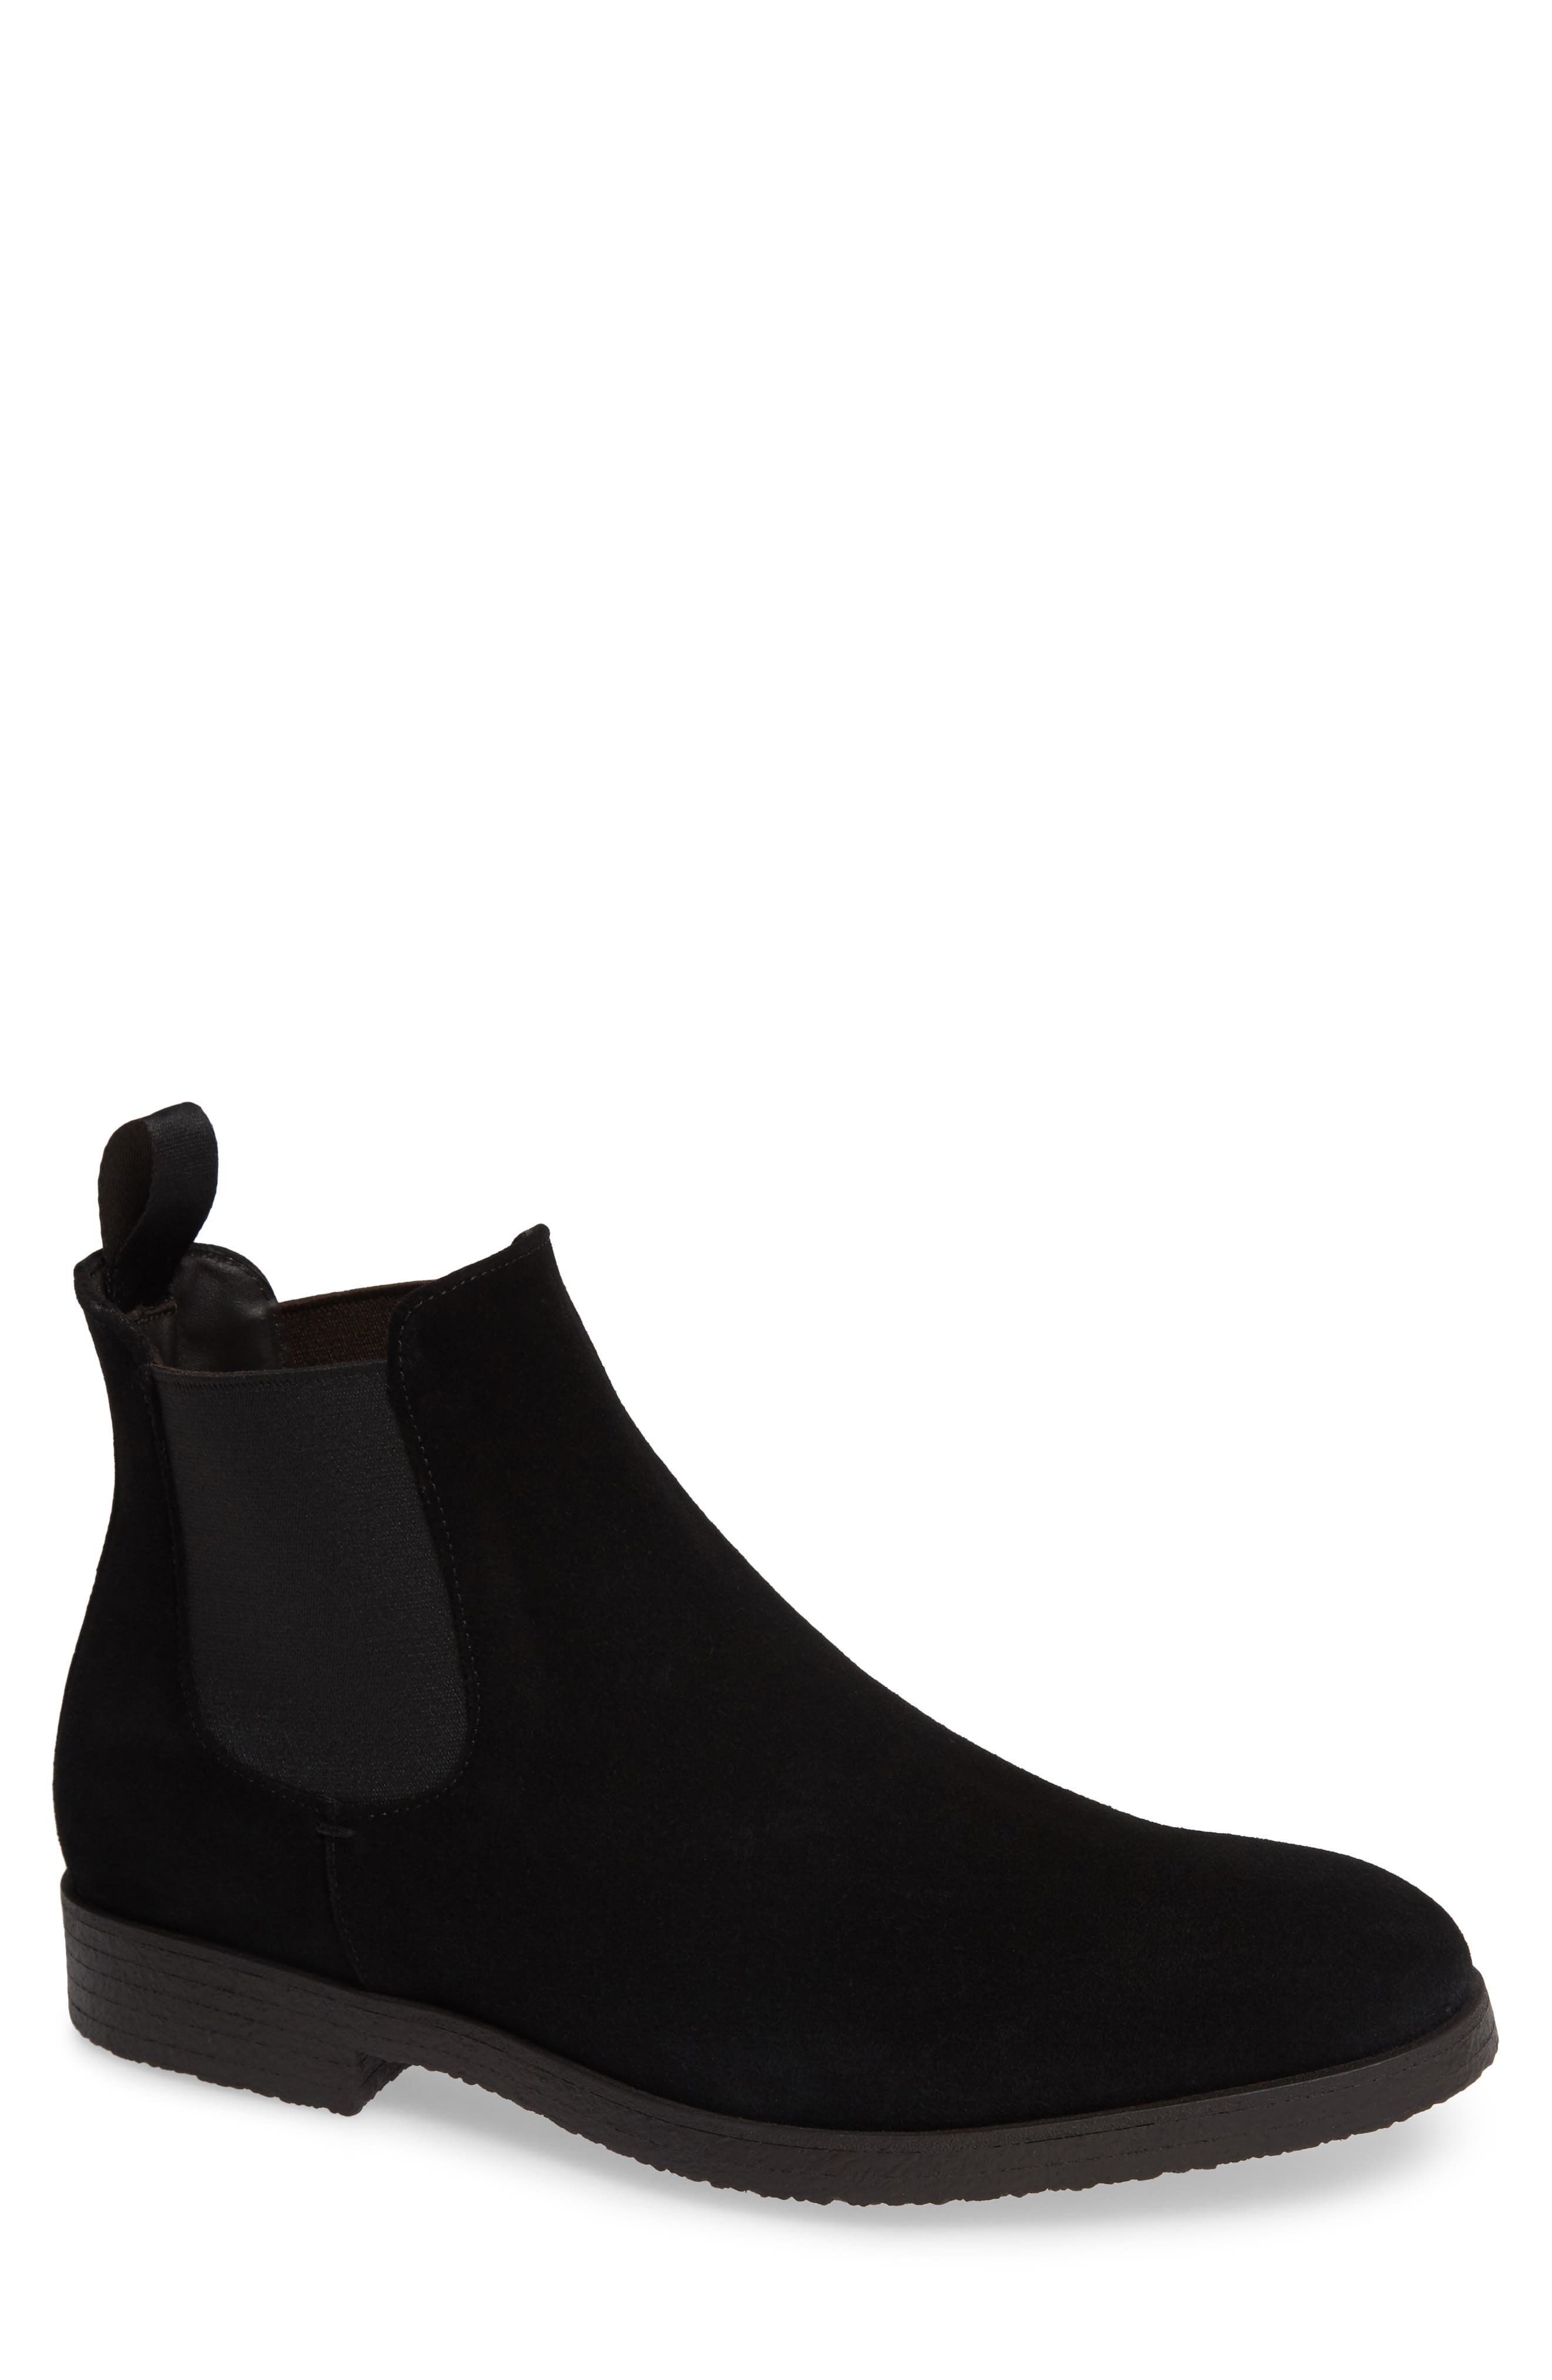 To Boot New York Caracas Chelsea Boot, Black